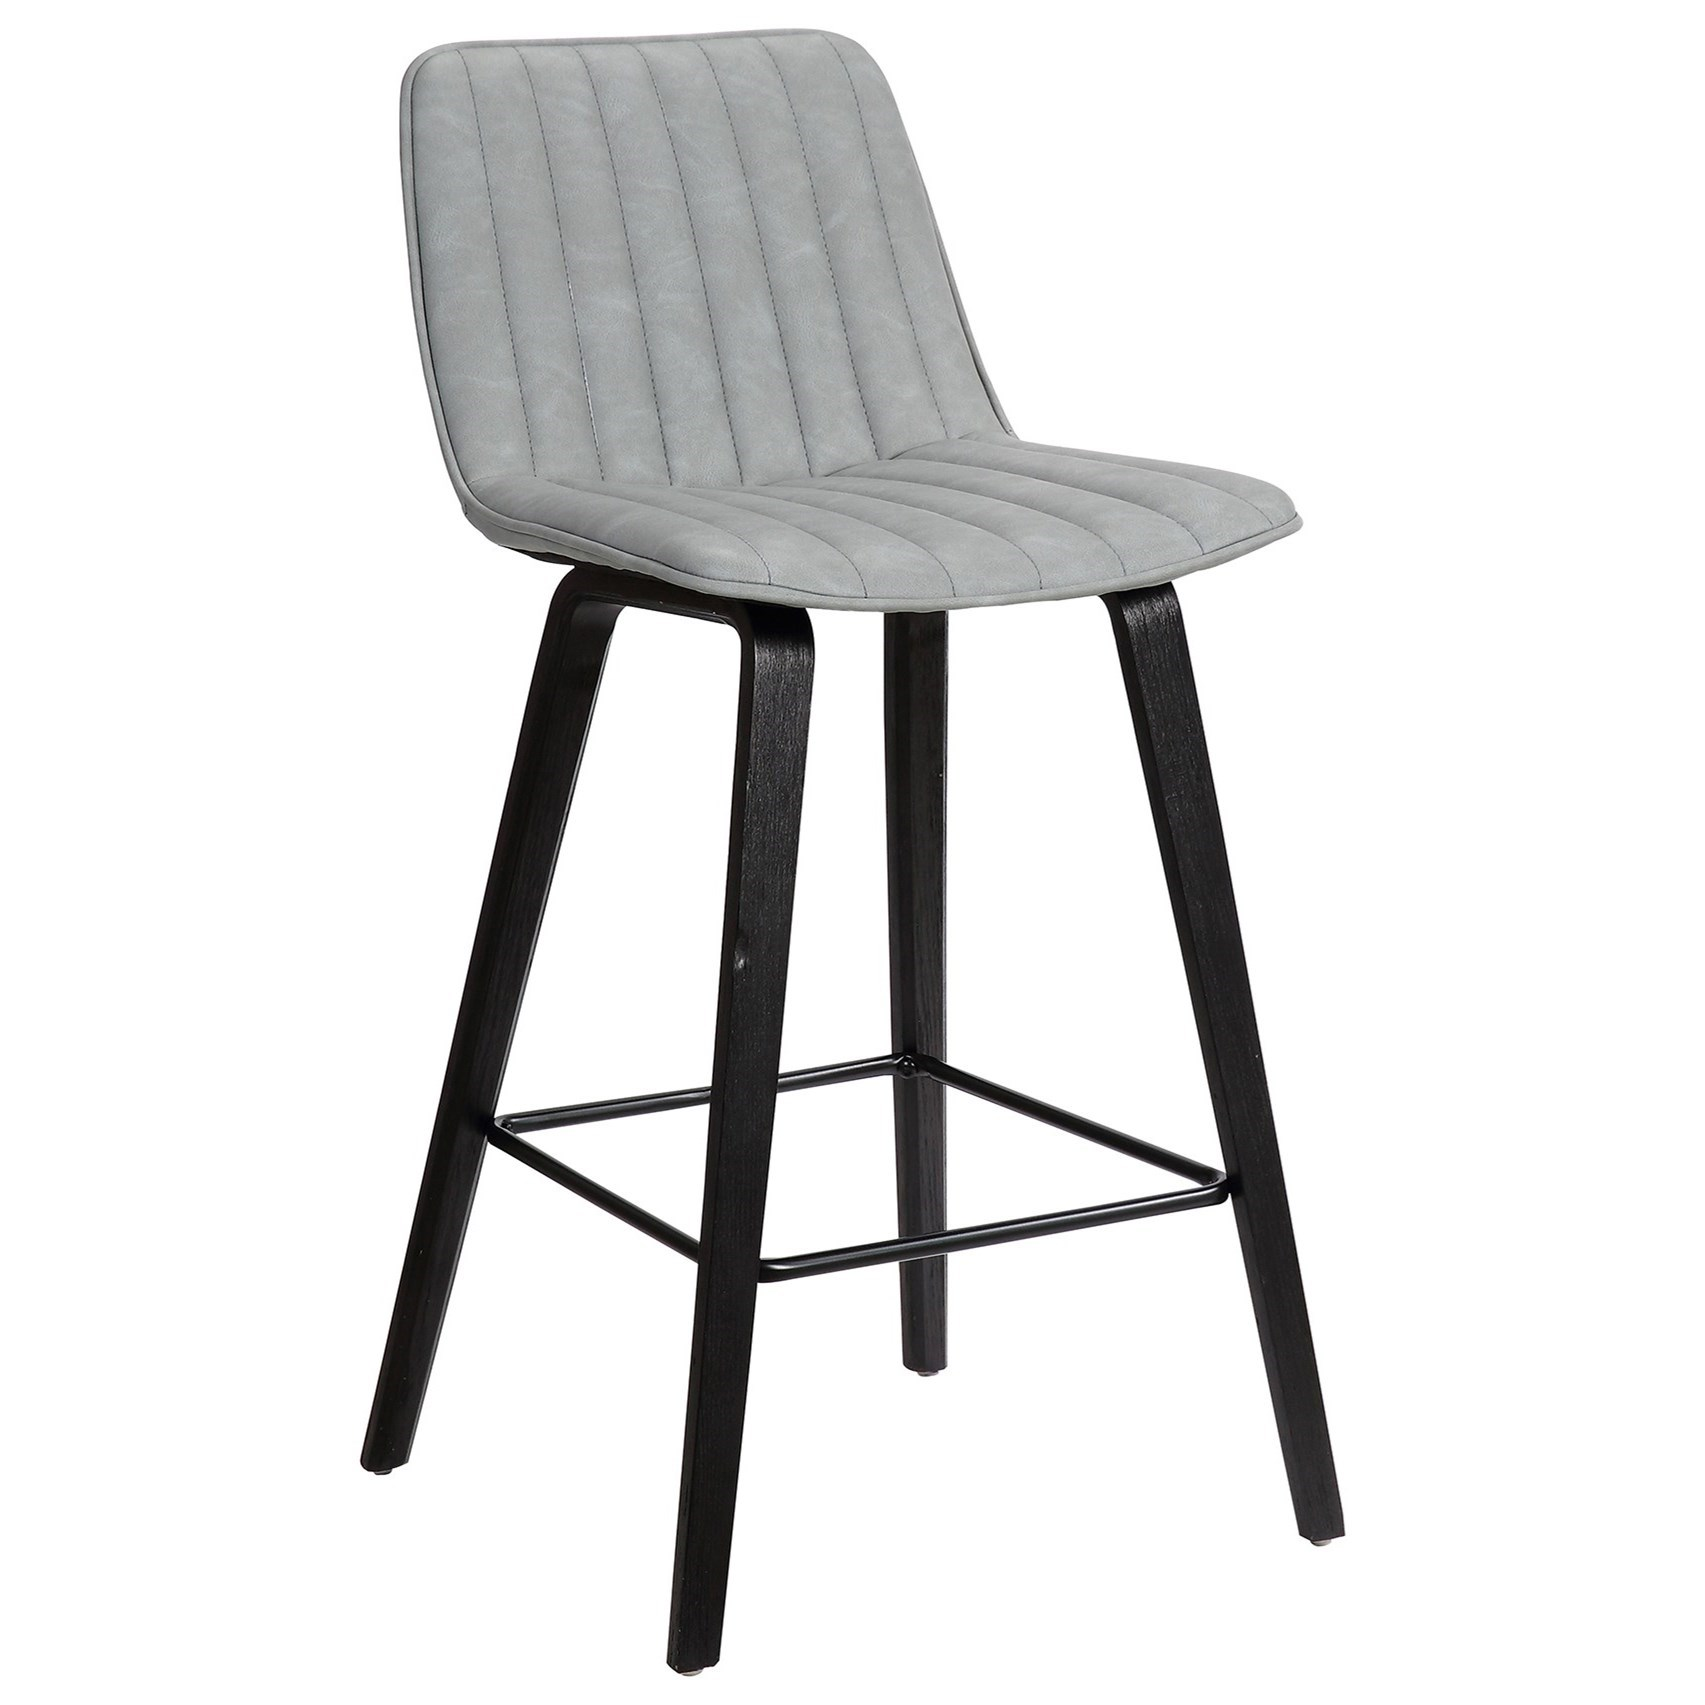 """Lorenz 26"""" Gray Faux Leather Barstool at Sadler's Home Furnishings"""